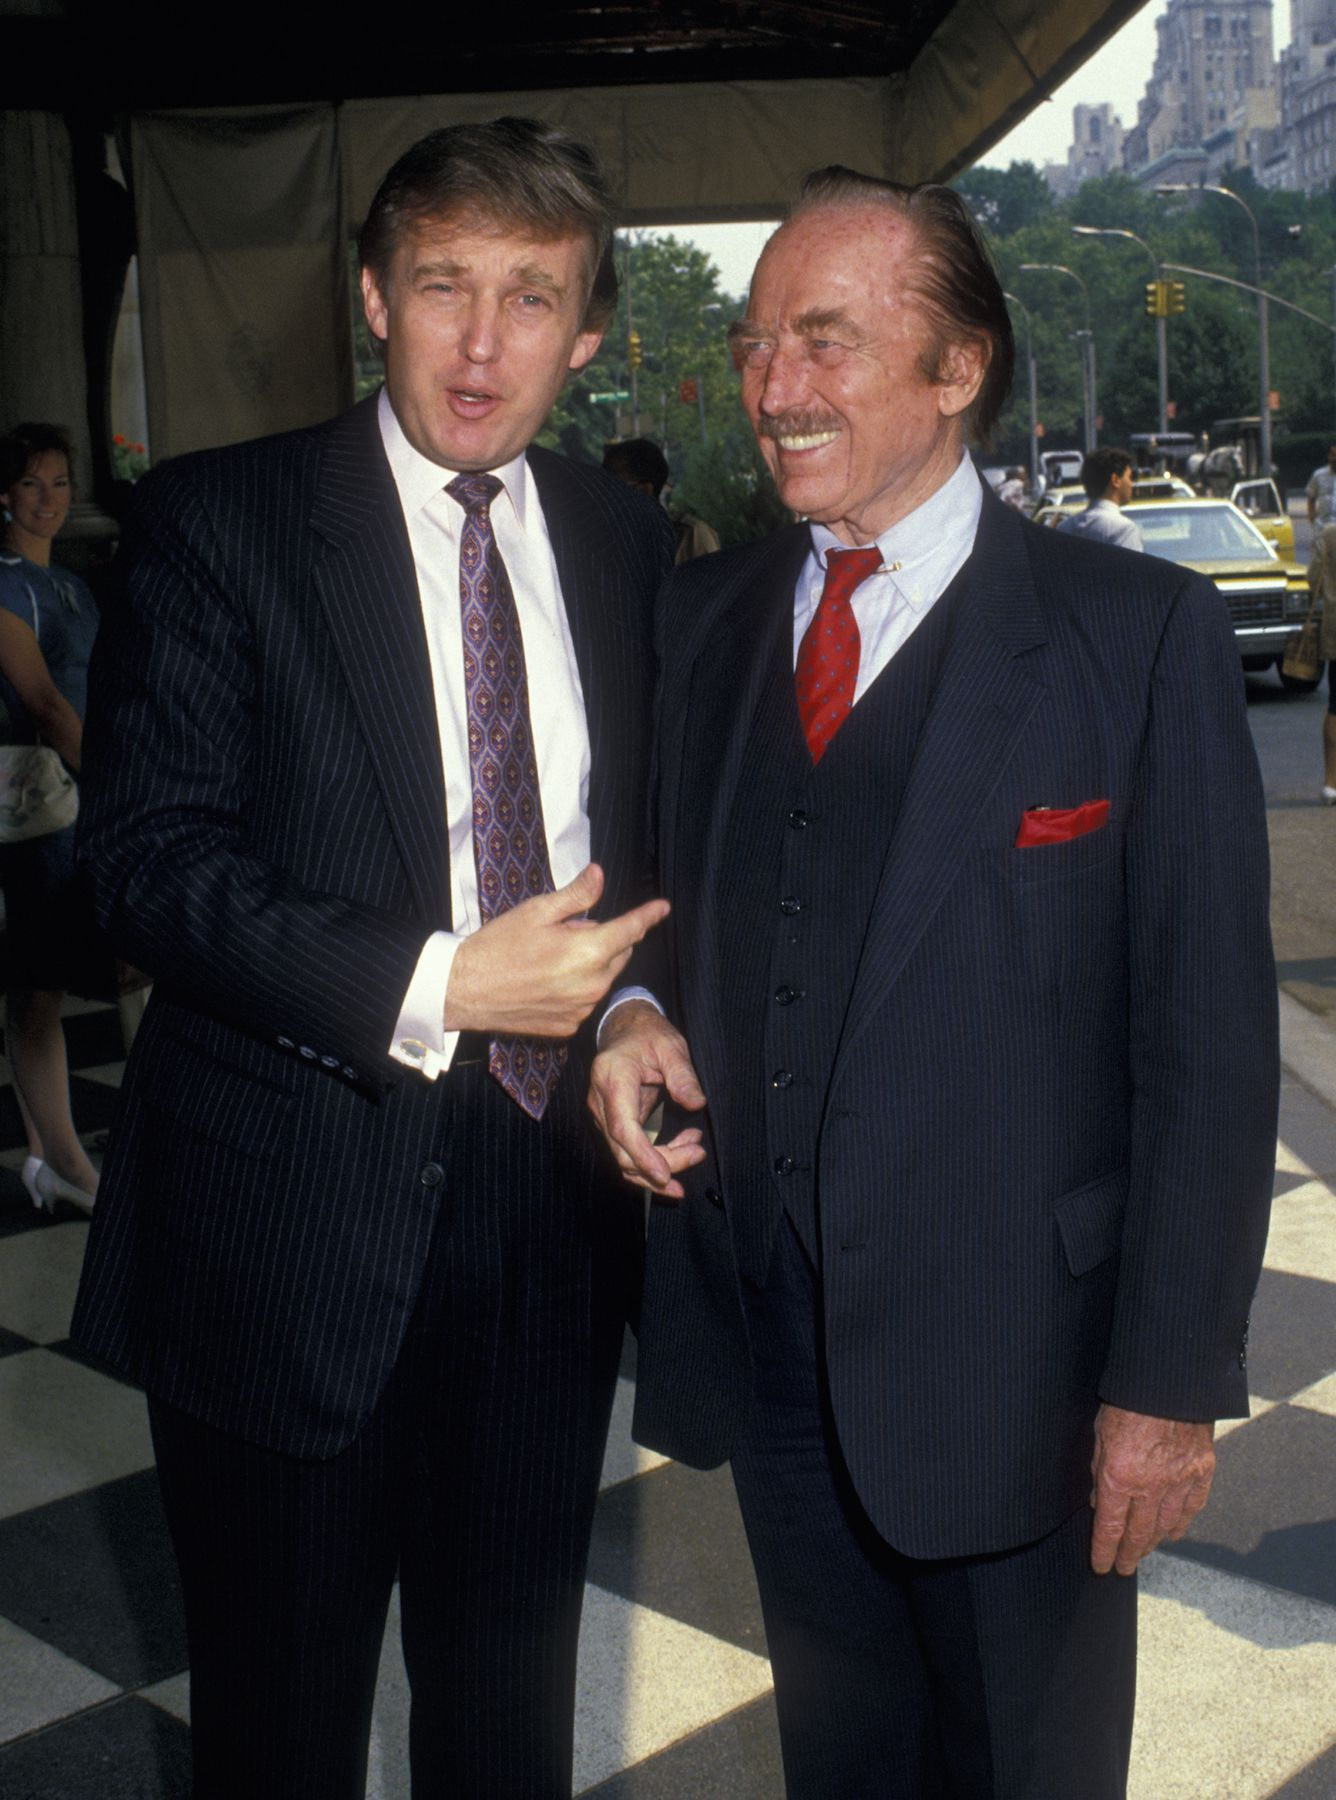 Donald Trump and Fred Trump during Donald Trump Holds a Press Conference - July 26, 1988 at The Plaza Hotel in New York City